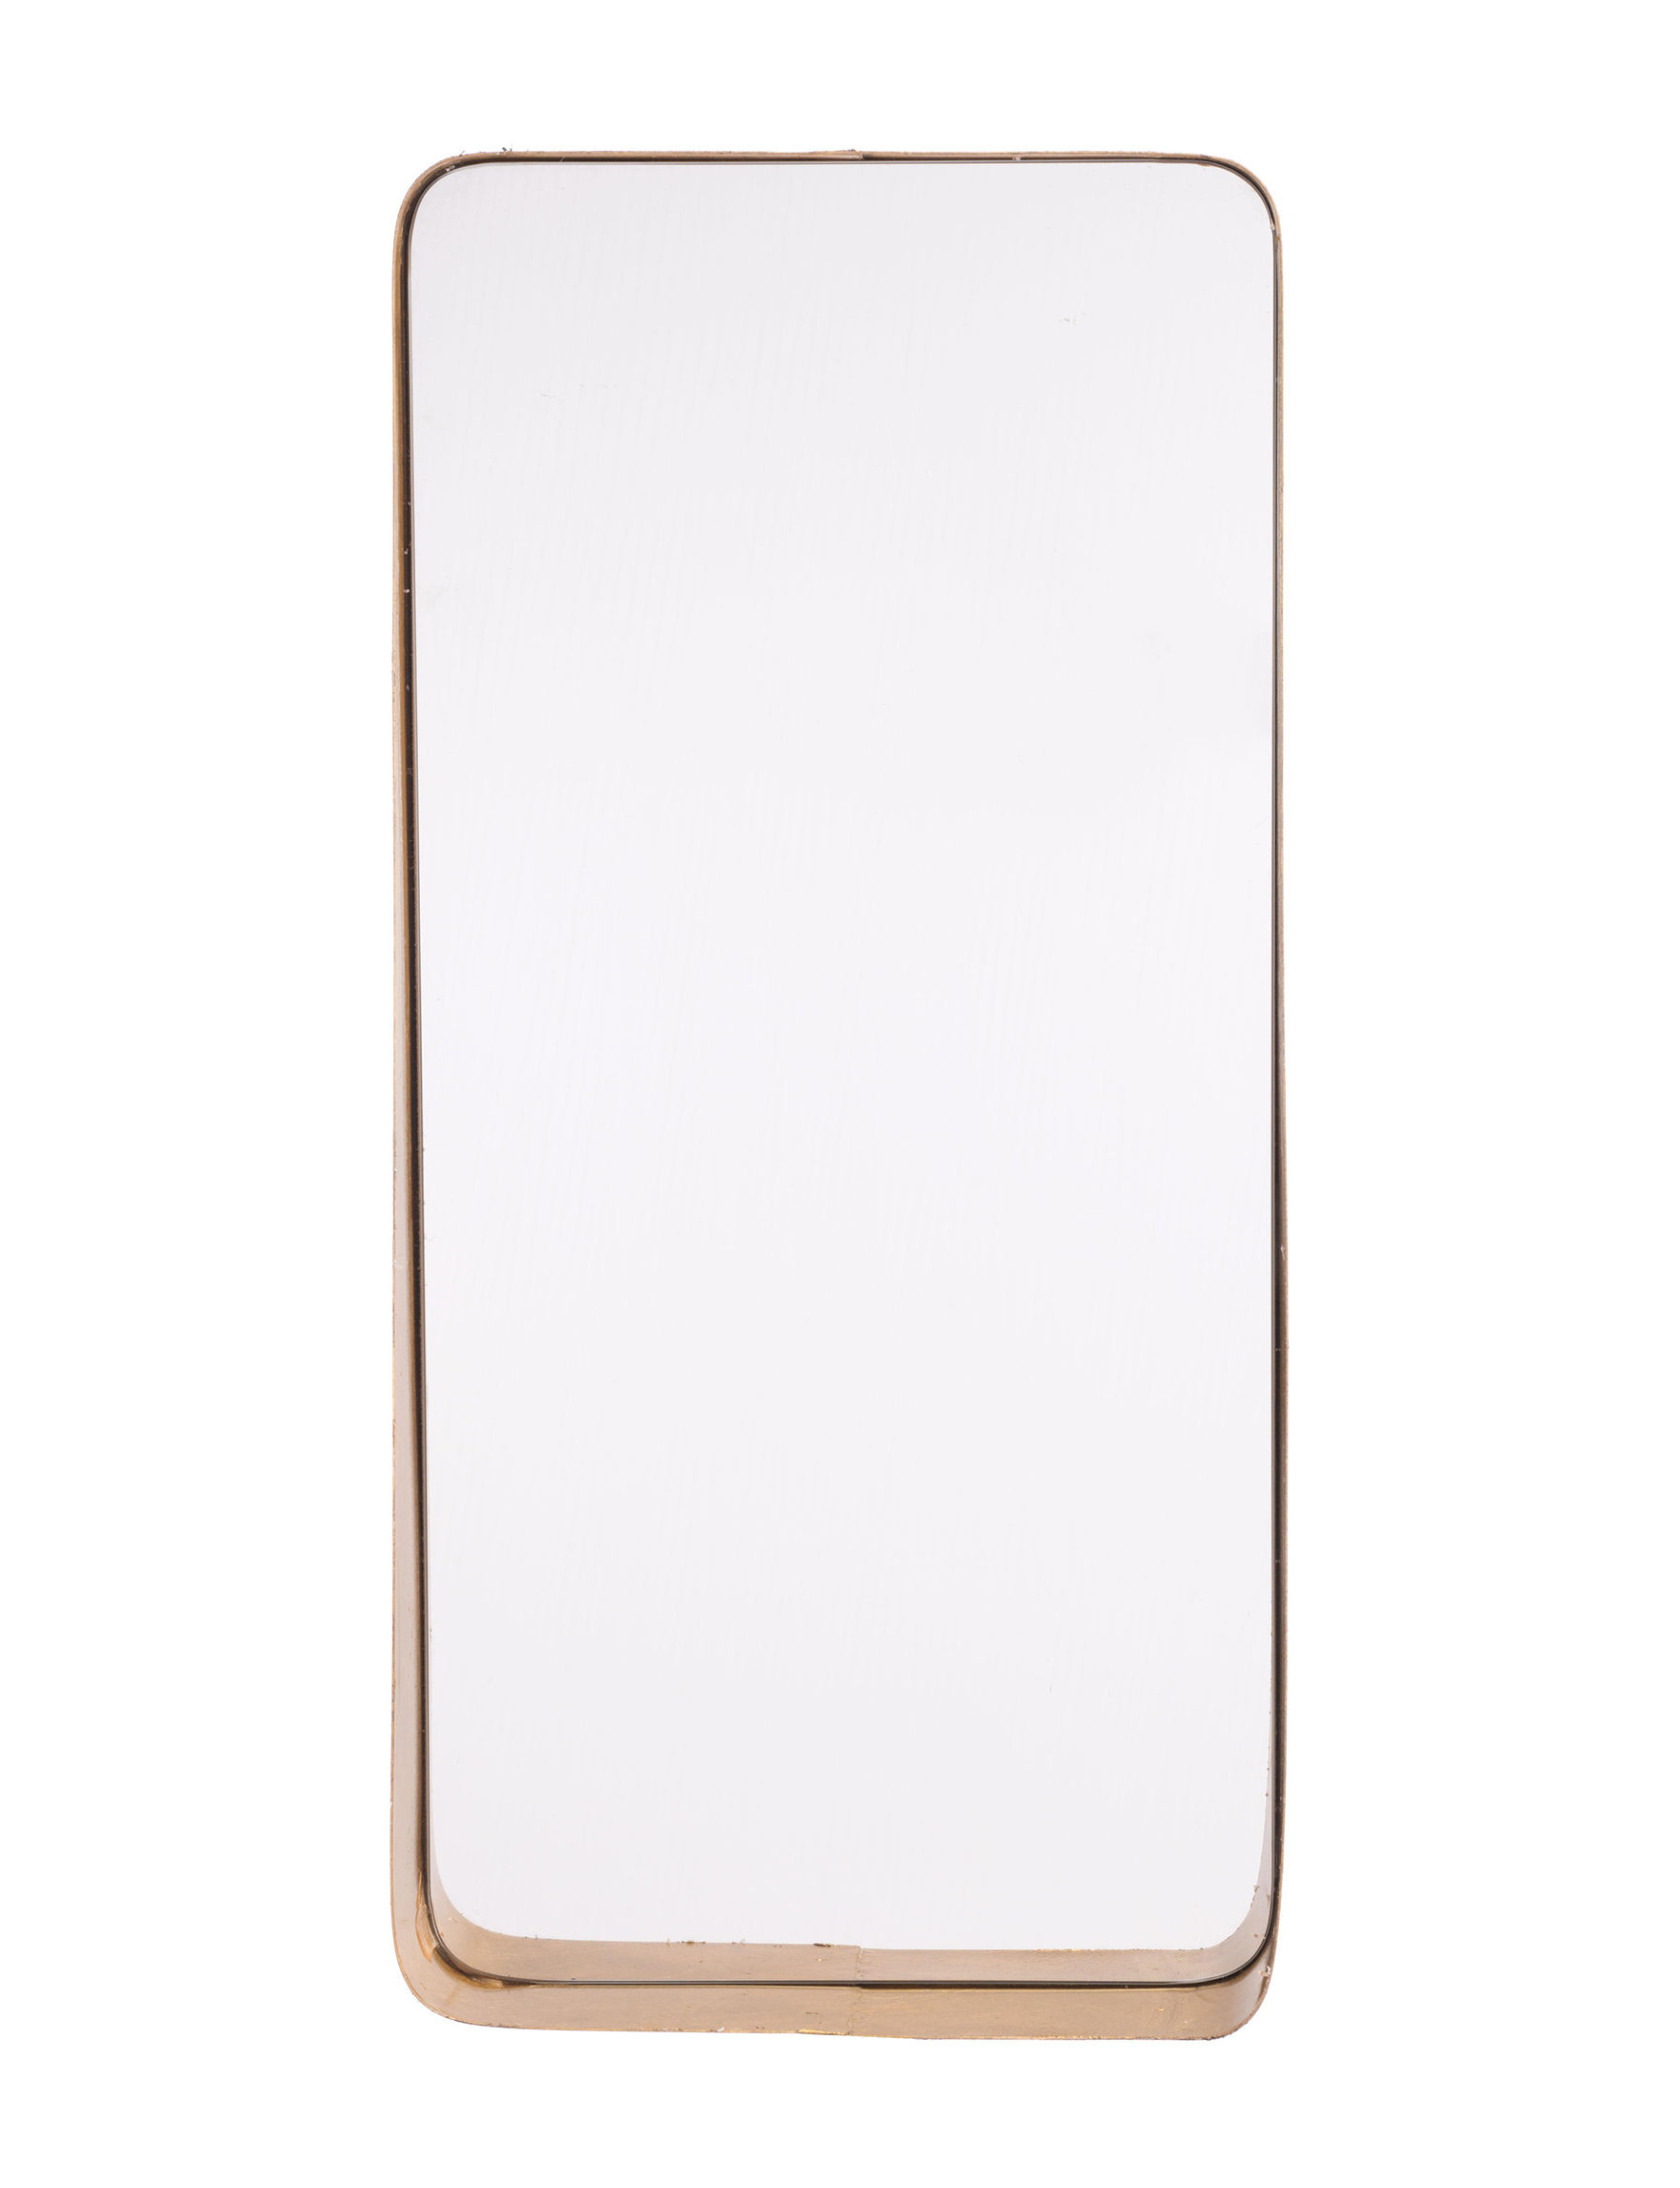 Zuo Modern  Mirrors Wall Decor